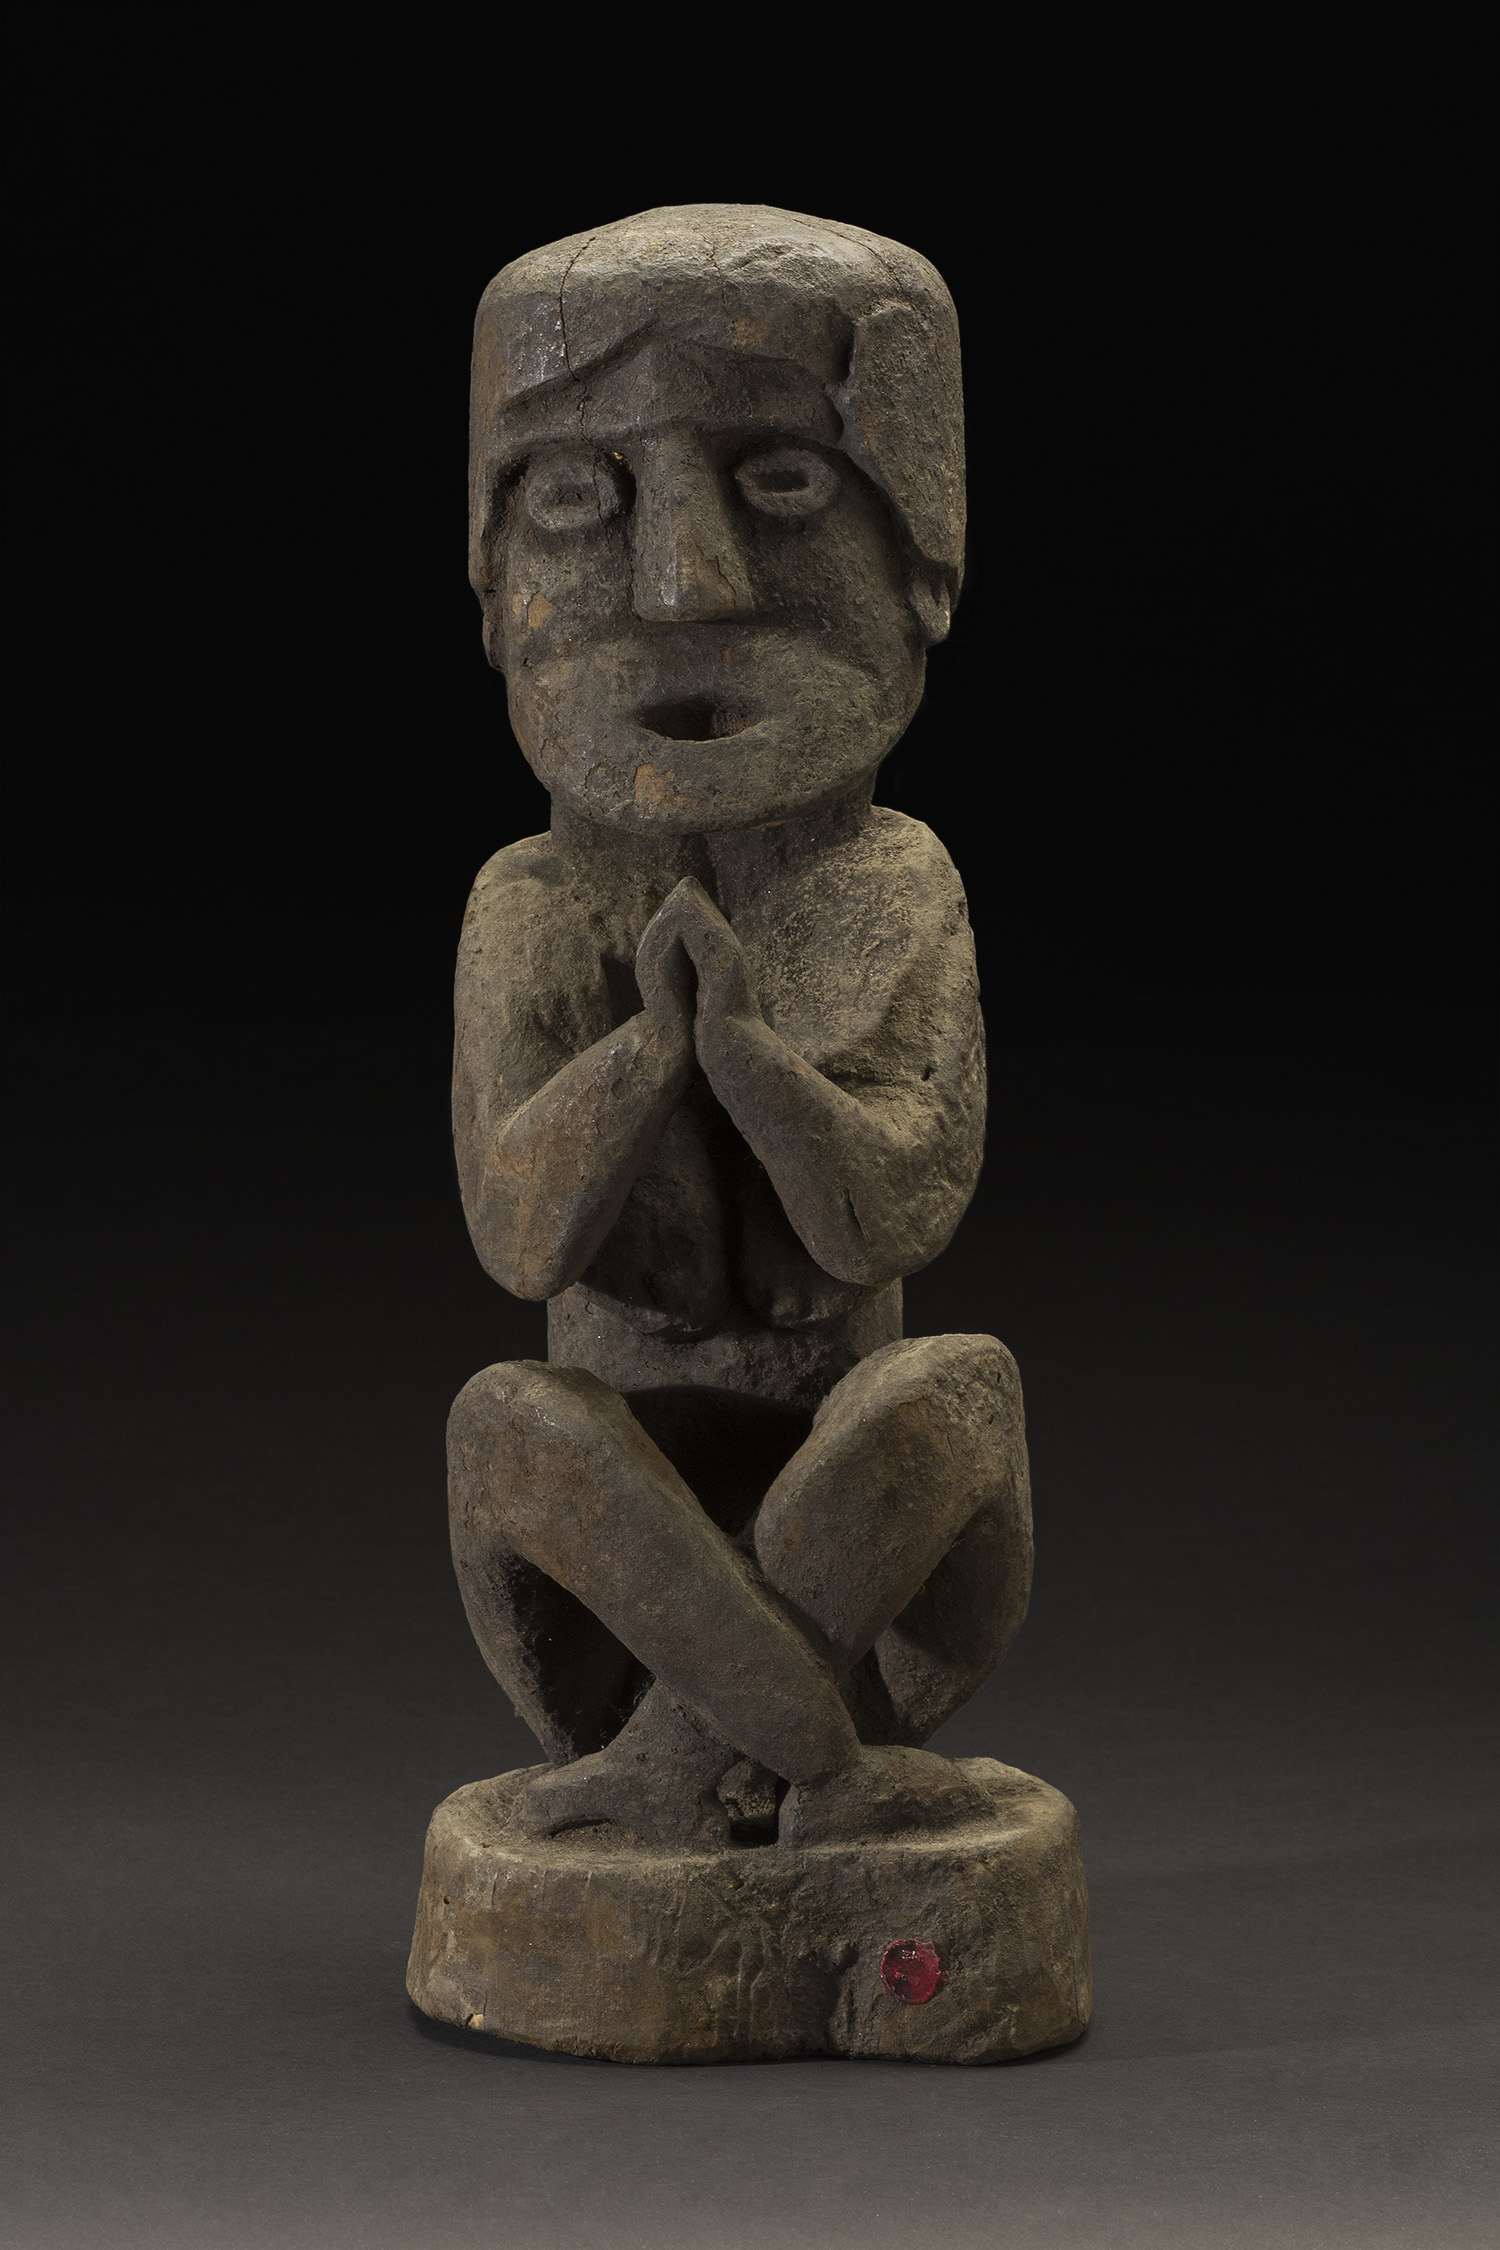 Nepal    Seated figure  , n.d. Wood 16 x 7 x 5.25 inches 40.6 x 17.8 x 13.3 cm Nep 56